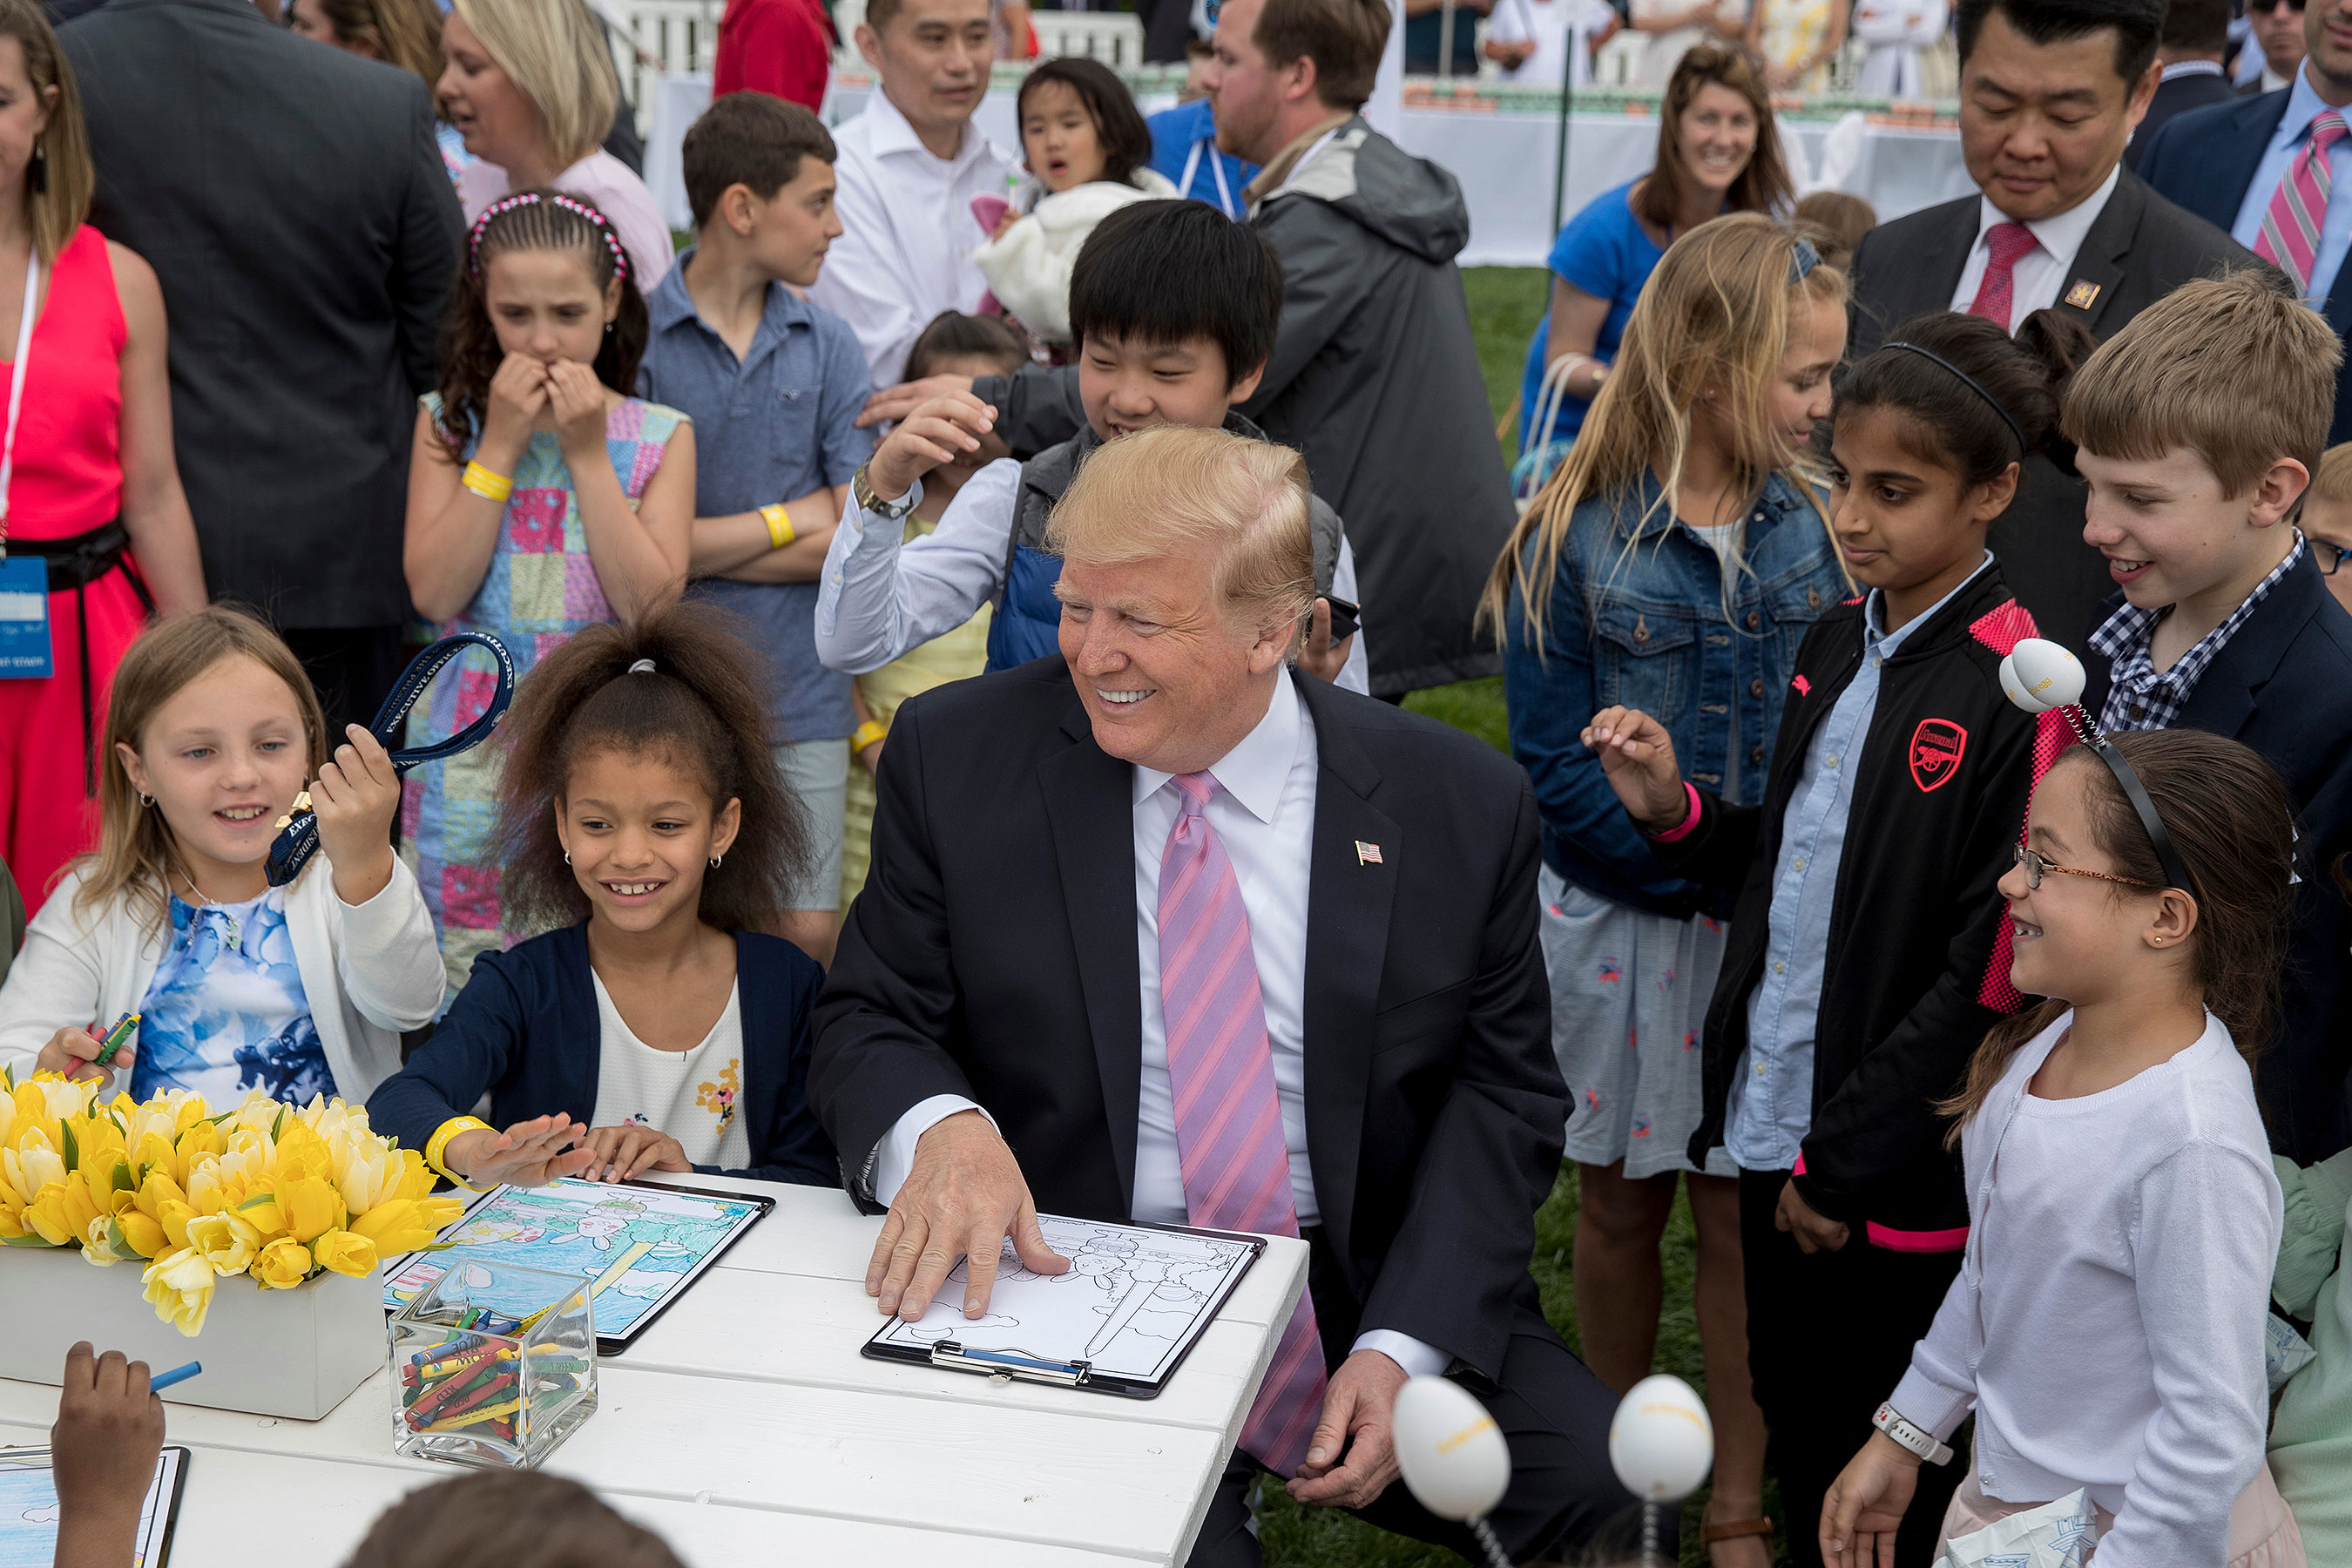 2019-TRUMP-at-easter-egg-roll-event.jpg